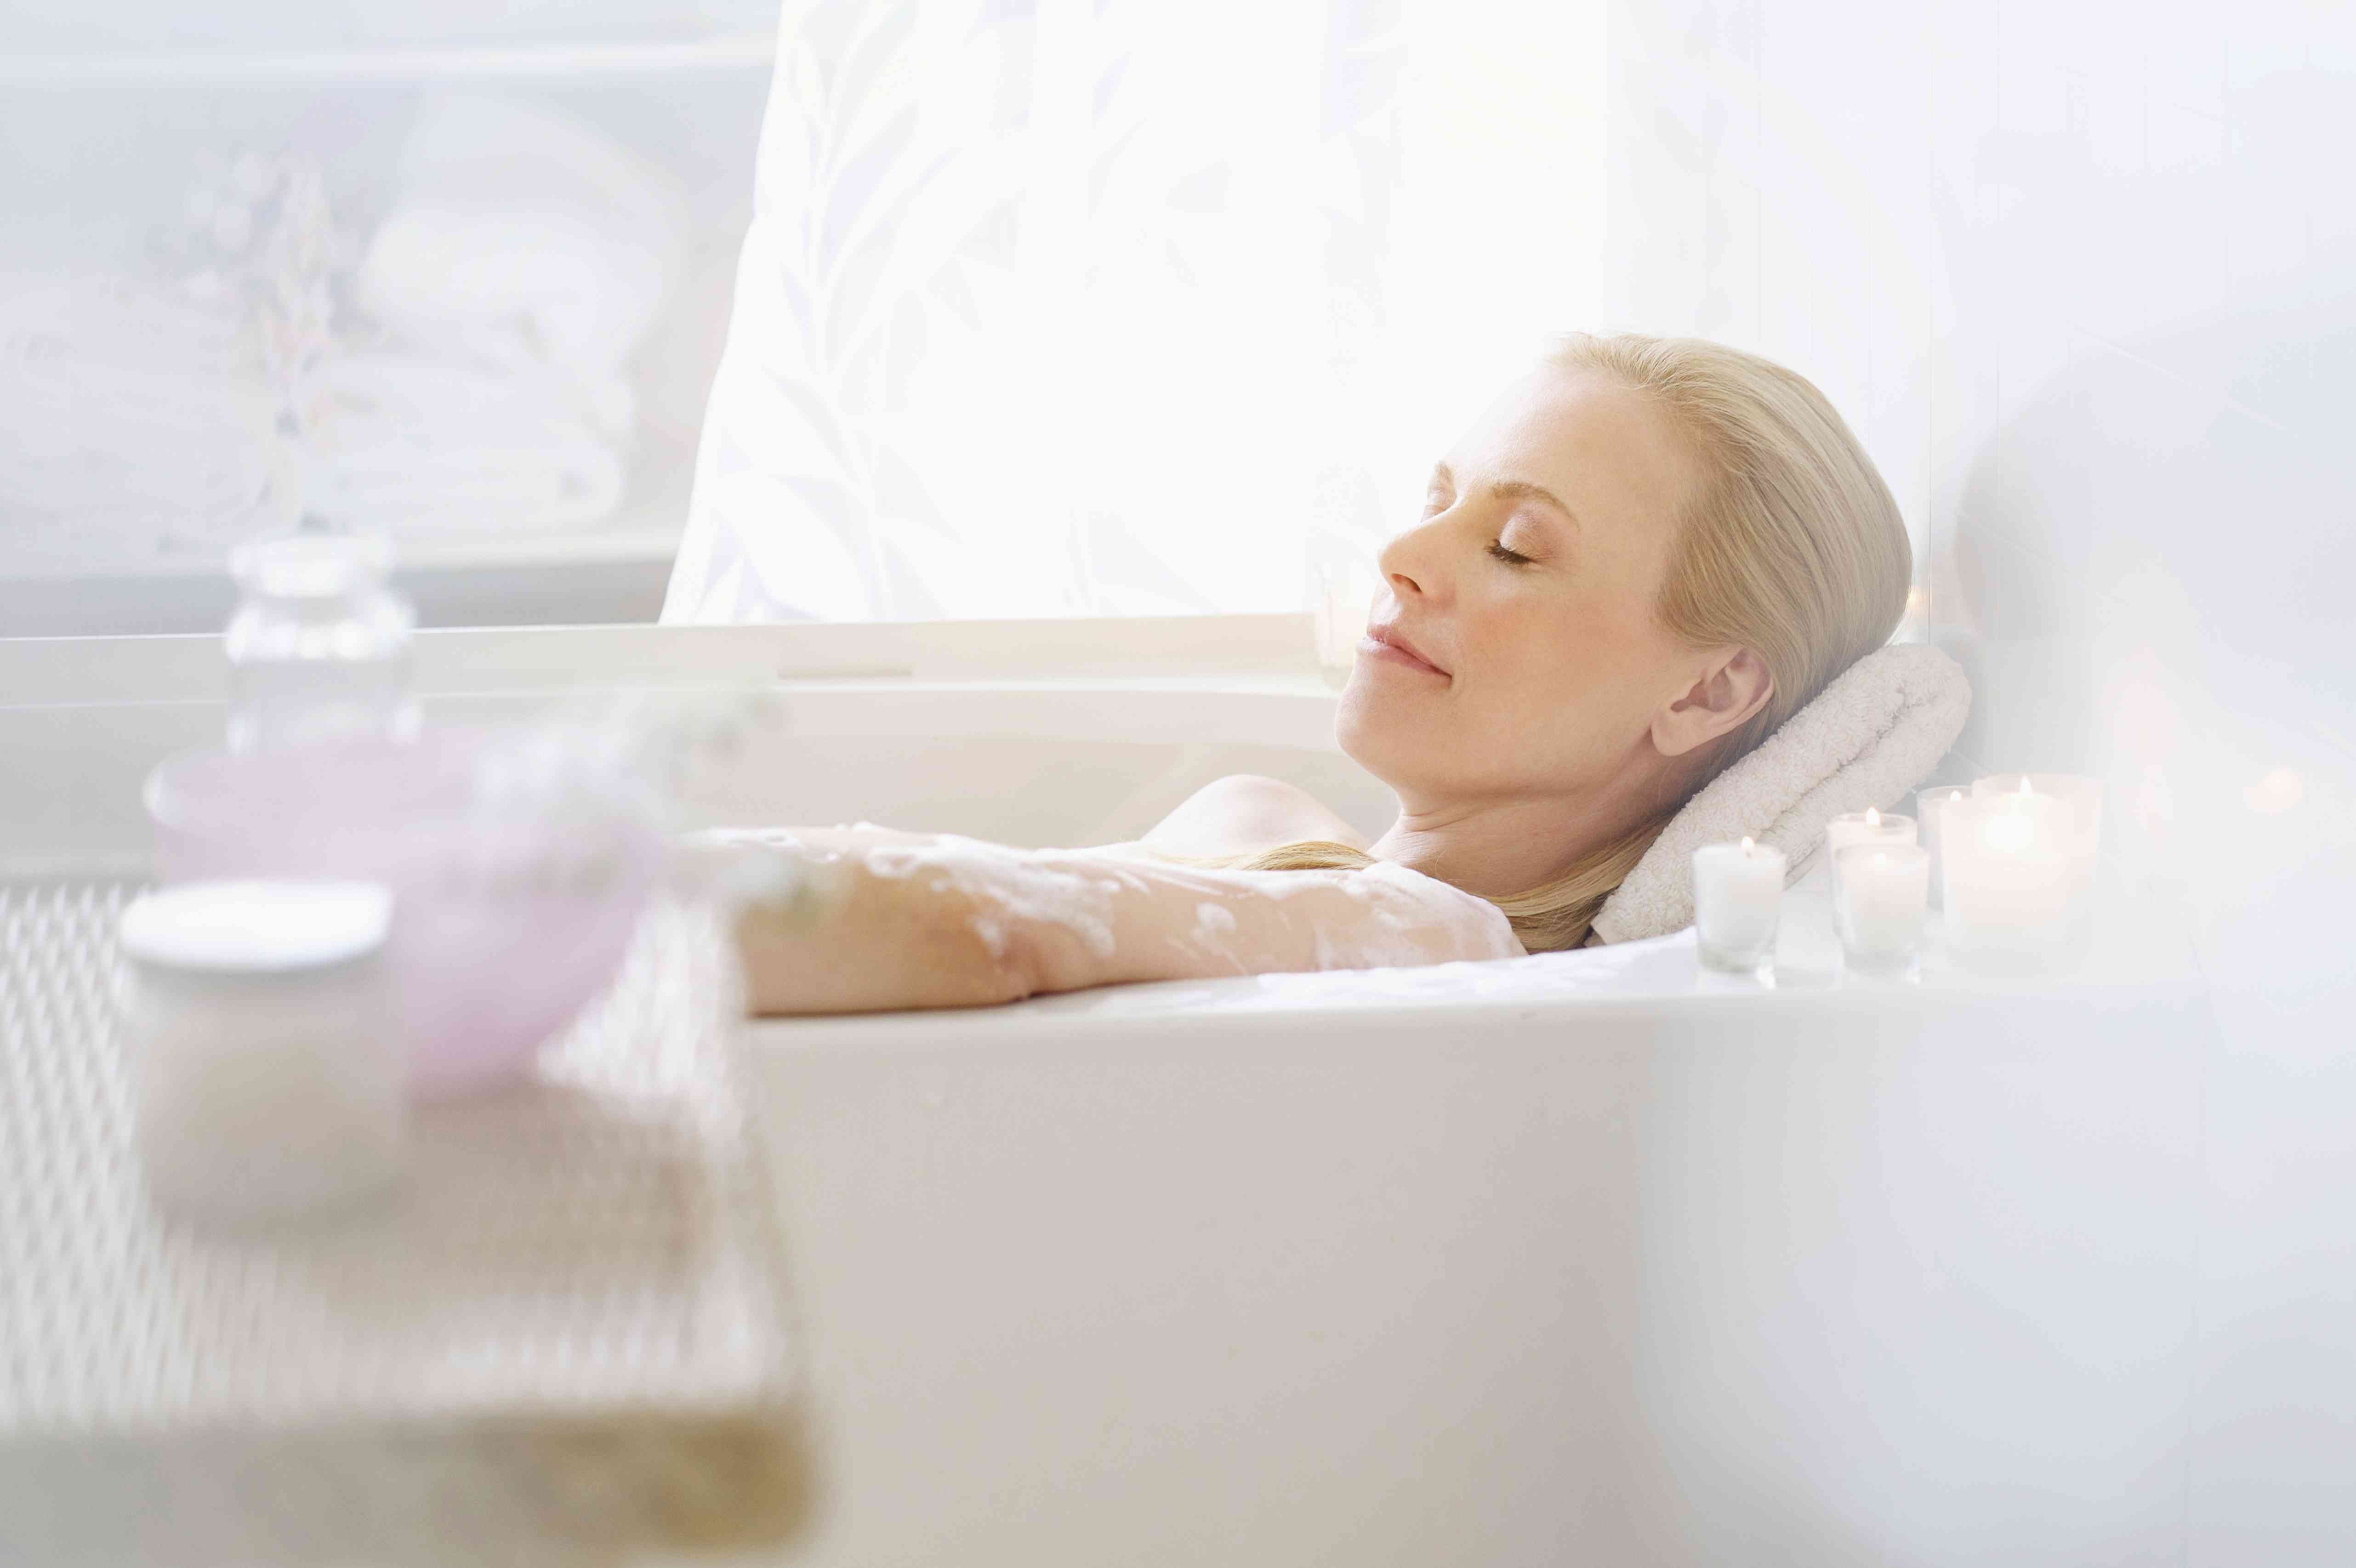 A woman relaxes in the bathtub